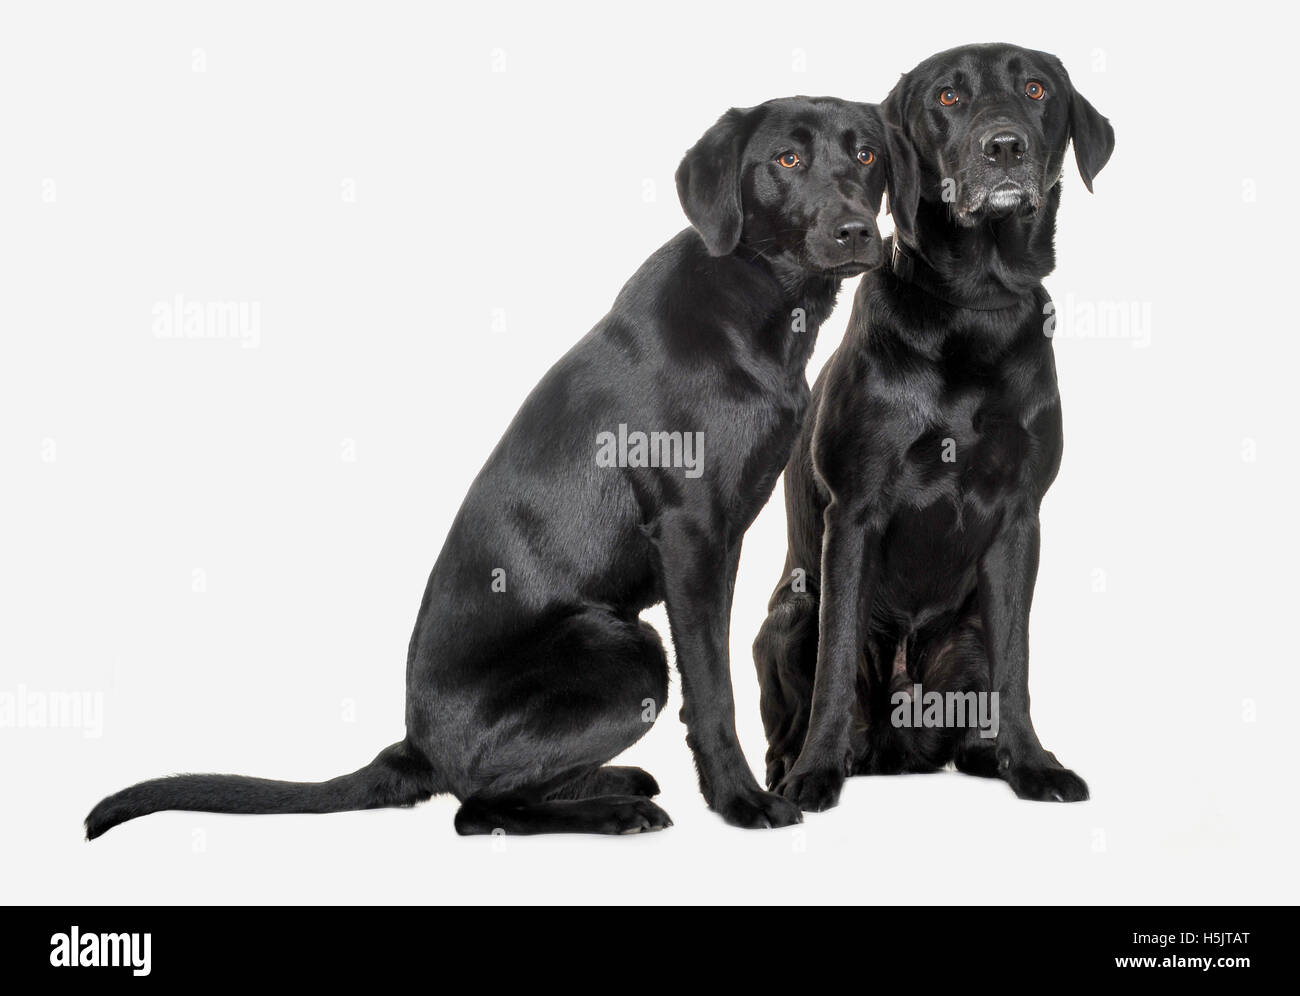 Image of: Puppy Two Black Labrador Dogs Photographed On White Background In Photographic Studio Stock Glassdoor Two Black Labrador Dogs Stock Photos Two Black Labrador Dogs Stock